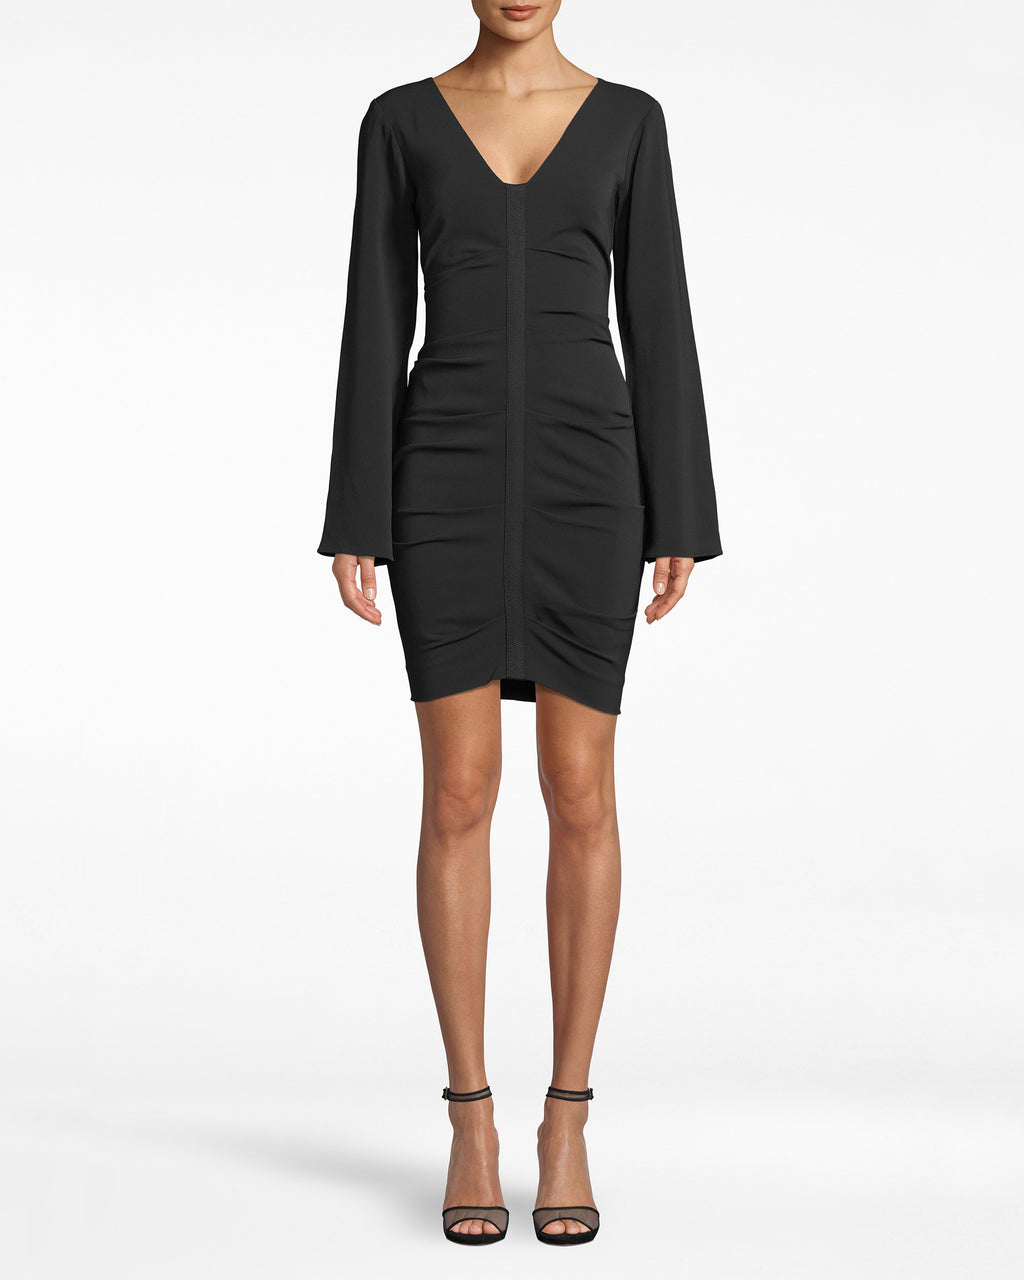 BQ20146 - BELL SLEEVE DRESS - dresses - short - A FRESH TAKE ON A LBD. THE BELL SLEEVES AND AN OPEN BACK ELEVATE THIS ESSENTIAL TO THE NEXT LEVEL. THE BACK IS CINCHED WITH LONG SILKY TIES AND HAS THOUGHTFUL RUCHING ALONG THE ZIPPER CLOSURE.